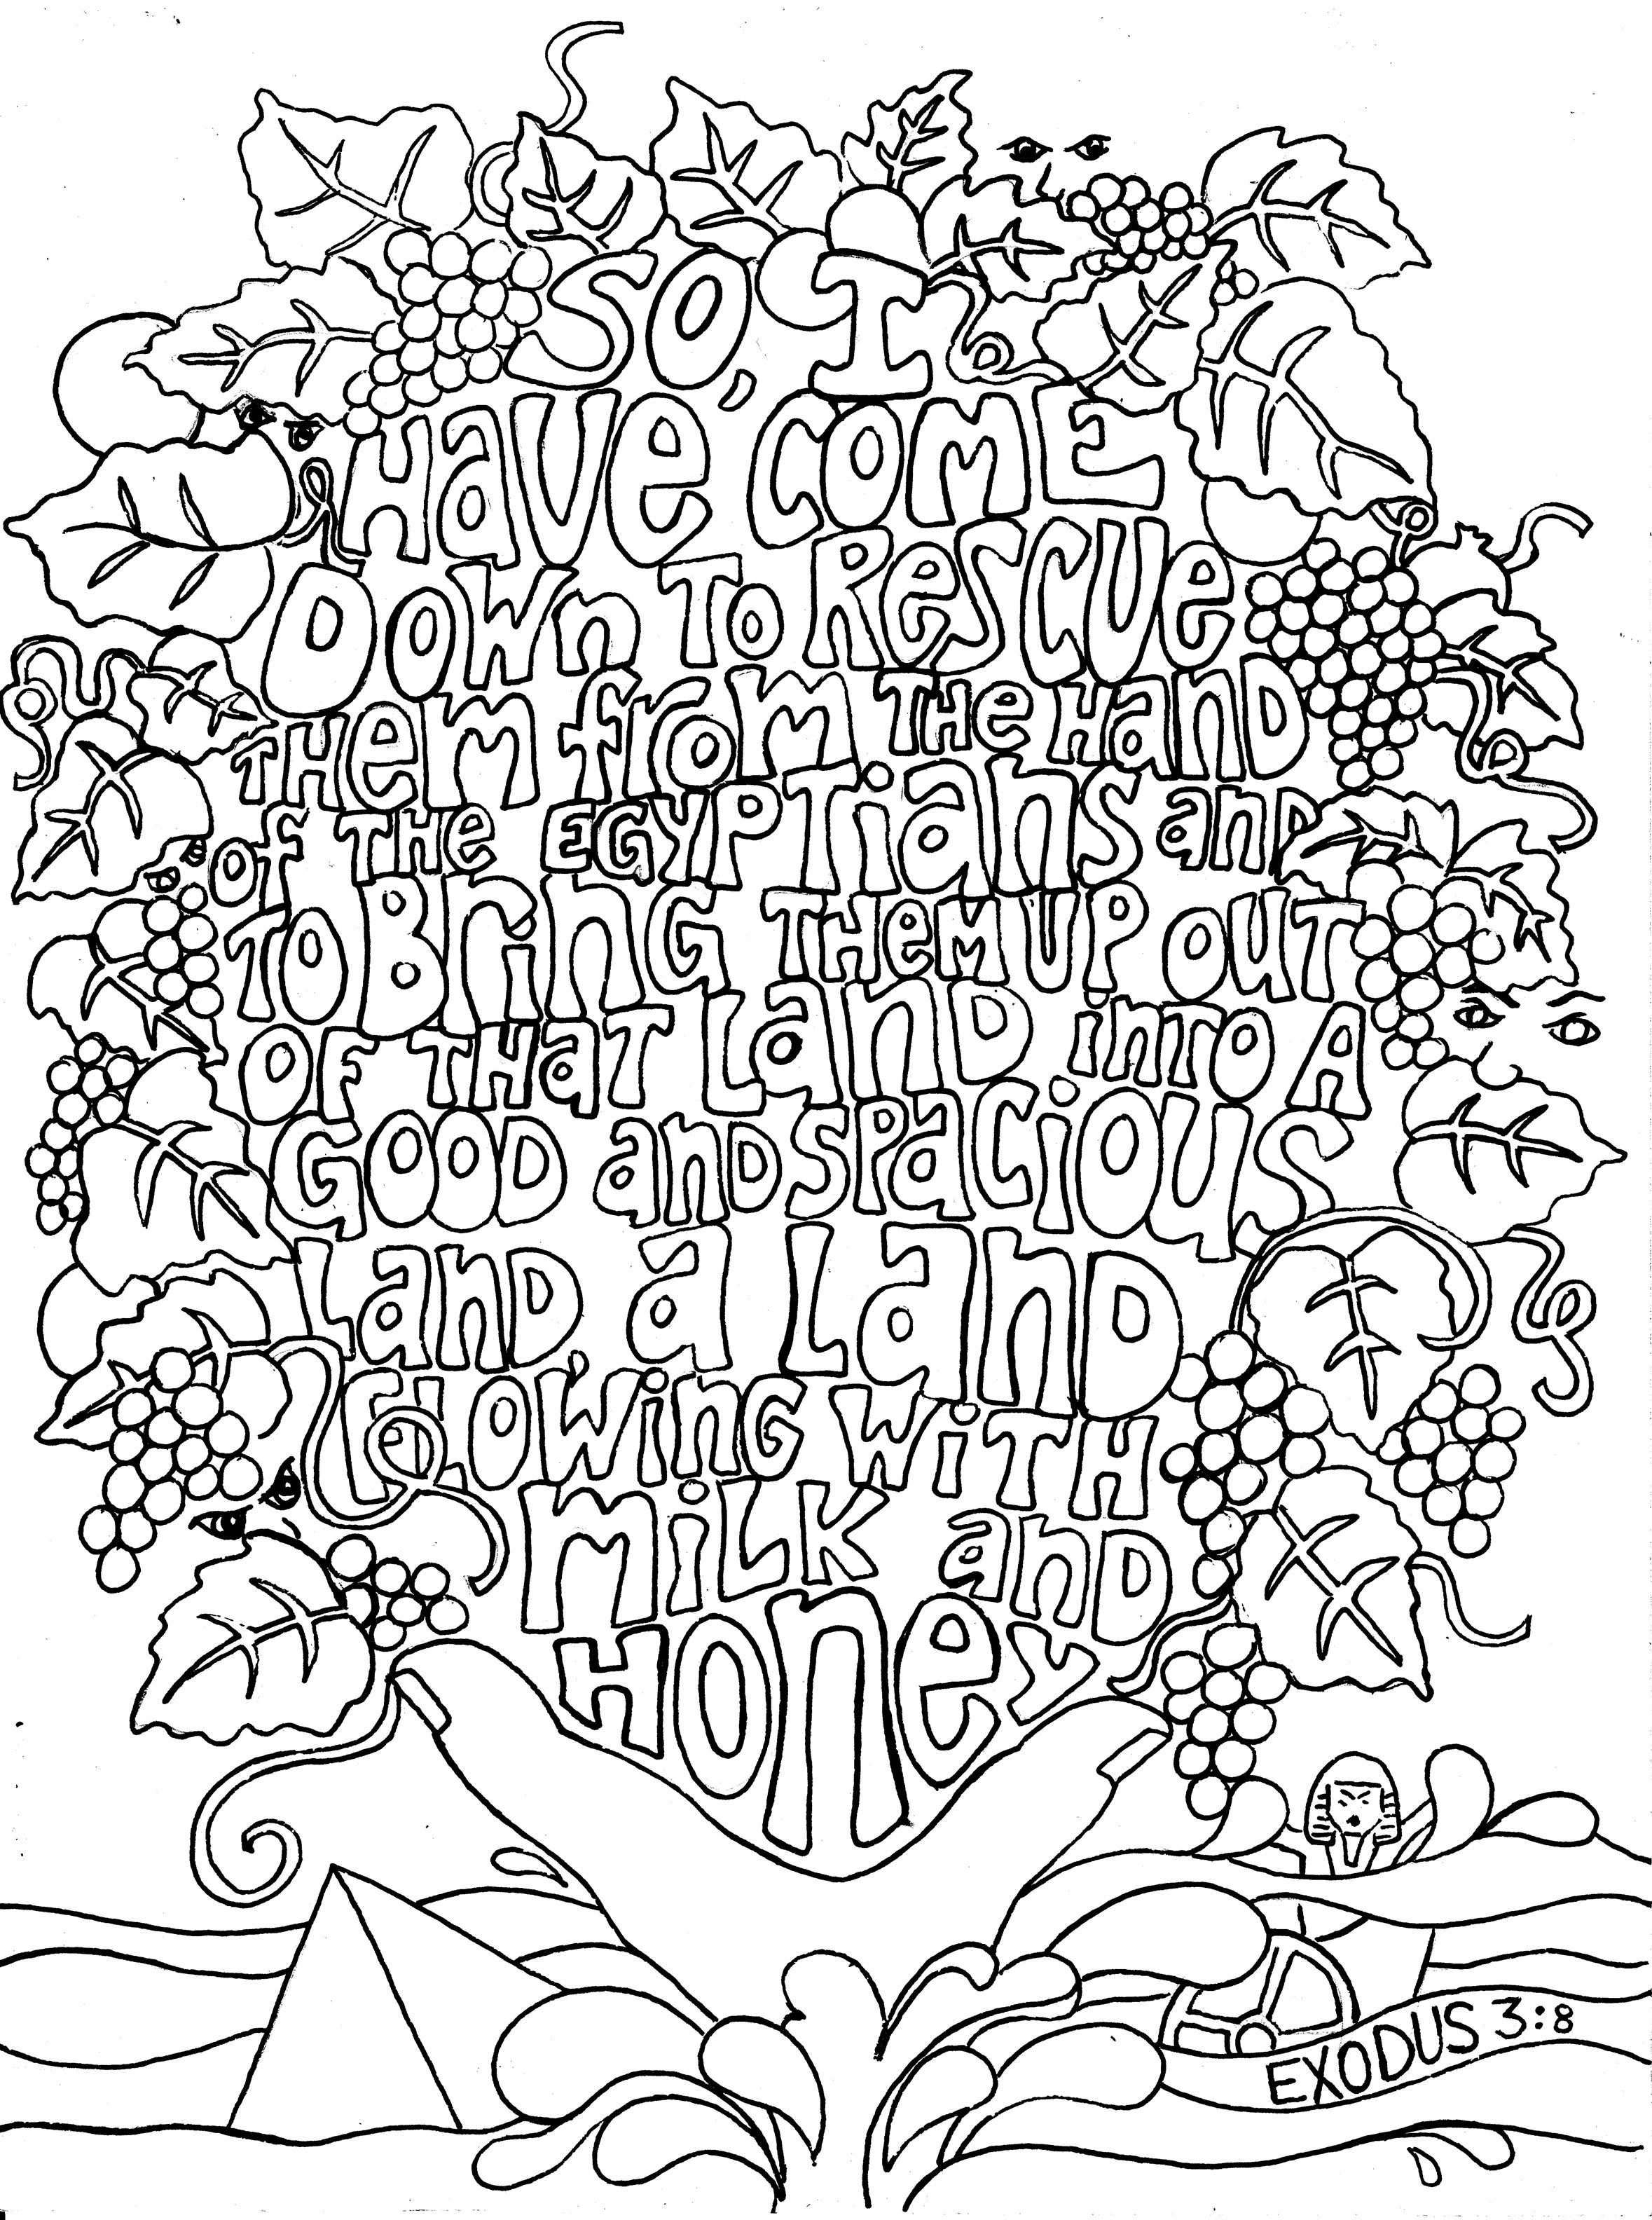 Free coloring pages for adults quotes - Exodus 3 8 Adult Colouring In Sheets Of Bible Verses Link Is Courtesy Of A Google